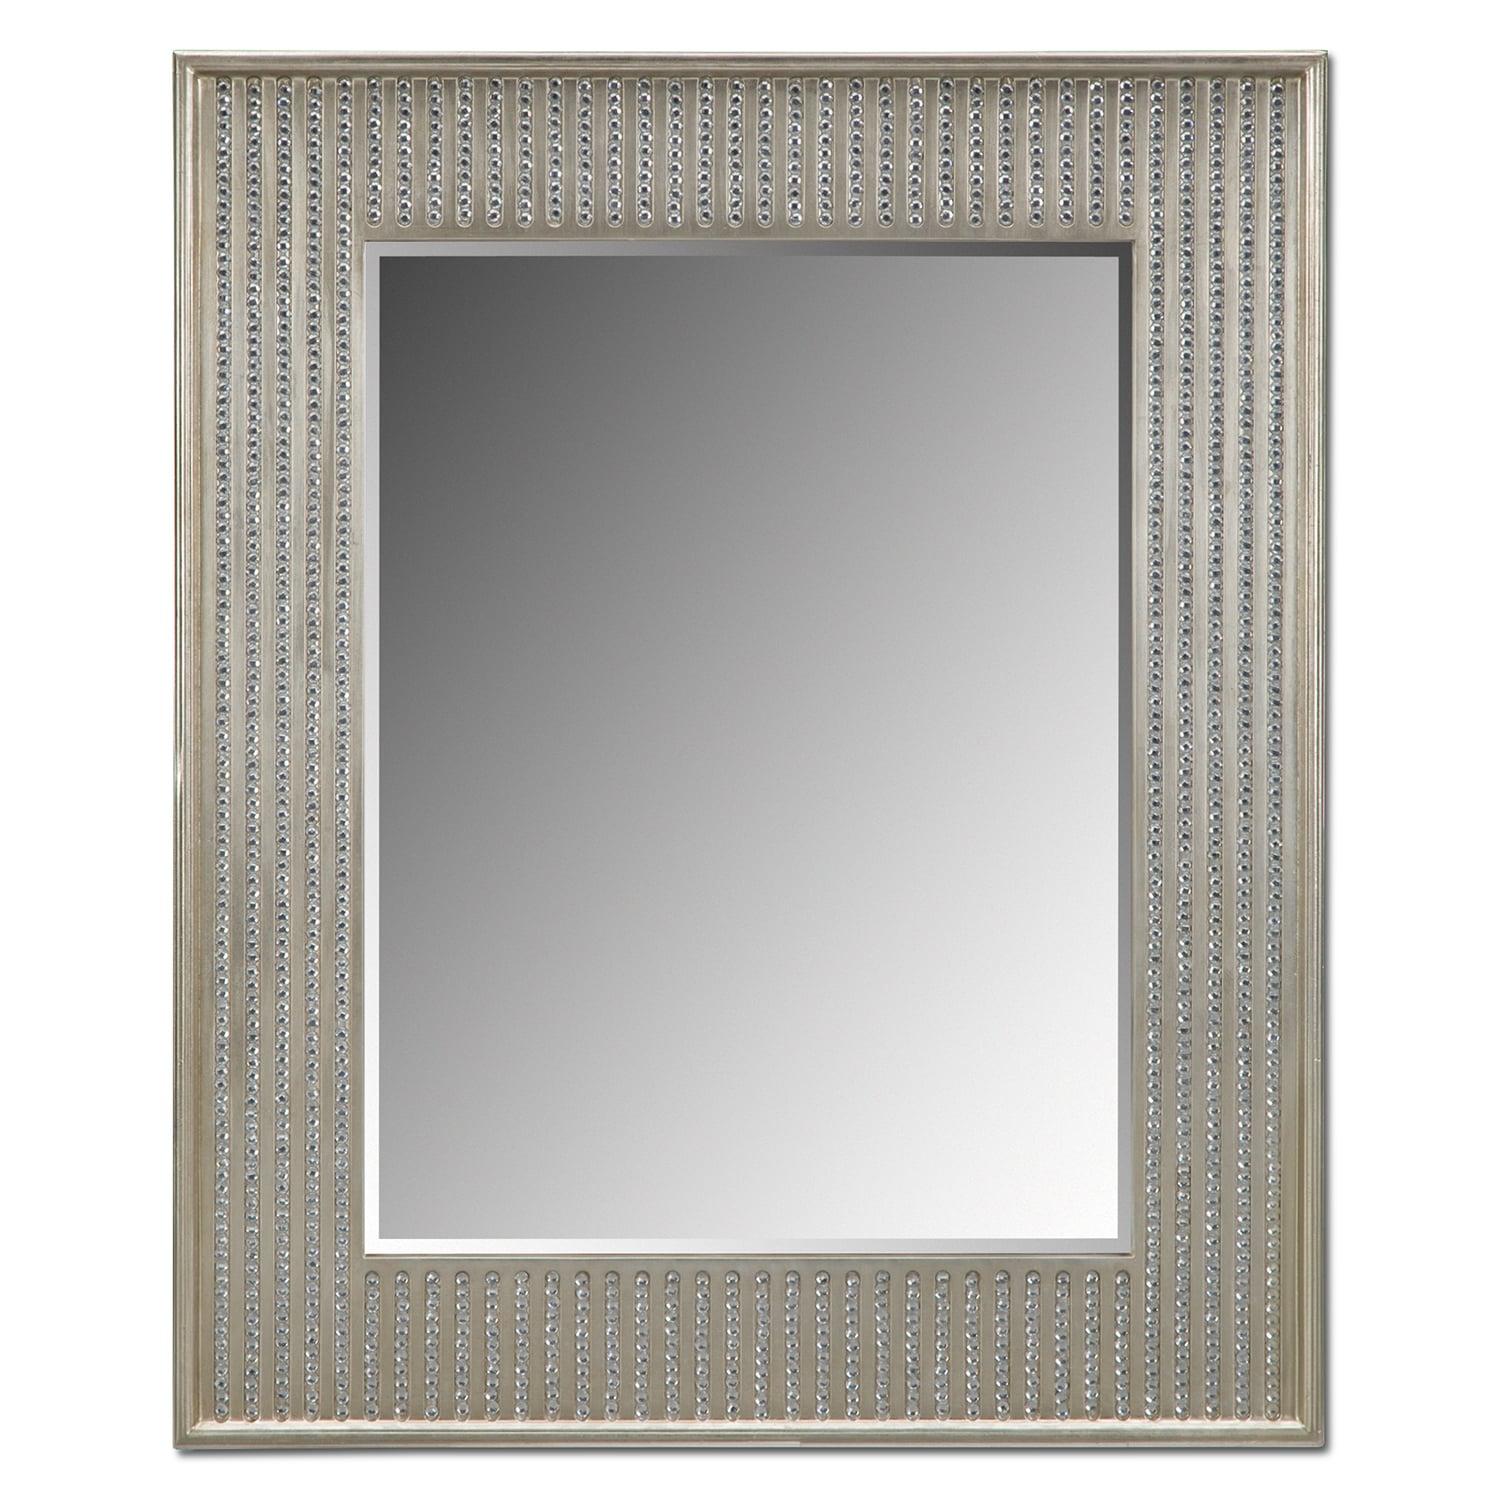 Home Accessories - Bling Glam Mirror